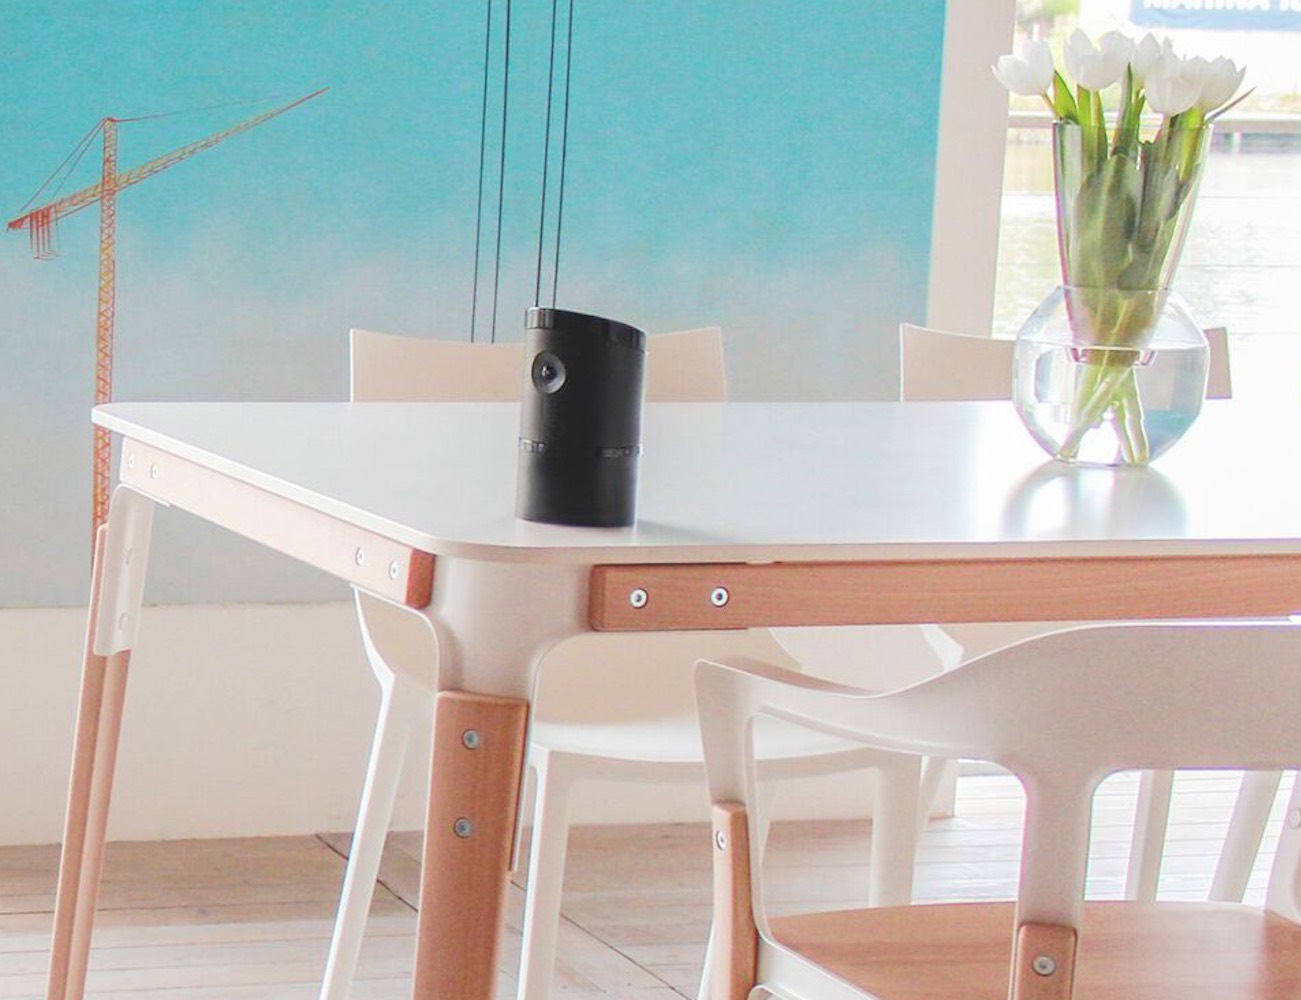 Angee – The First Truly Autonomous Home Security System